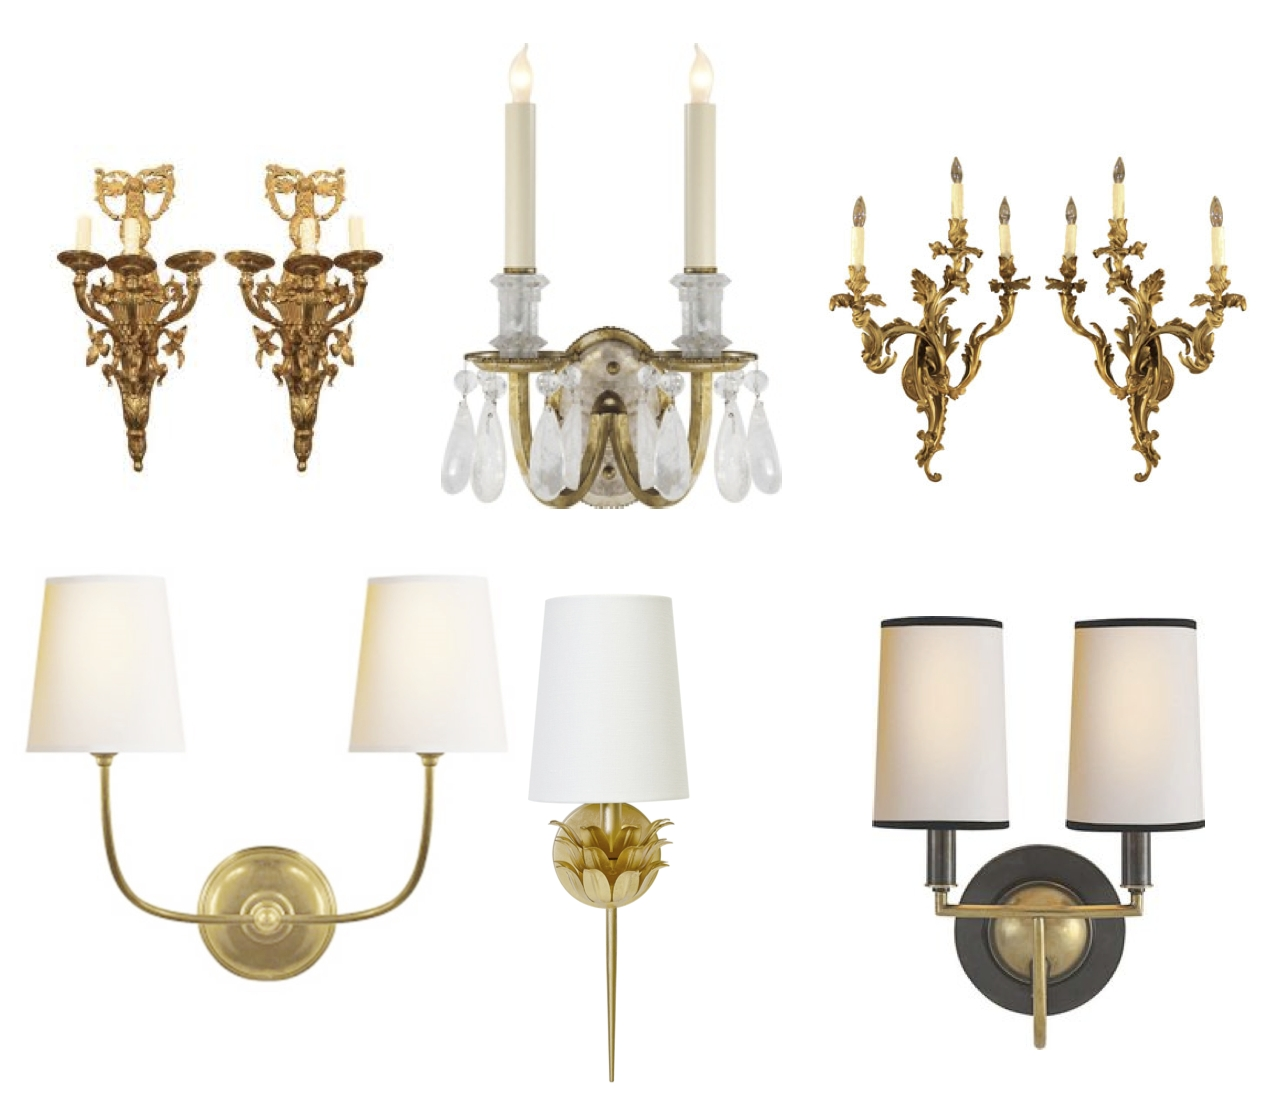 House Appeal For Wall Mounted Candle Chandeliers (View 8 of 15)